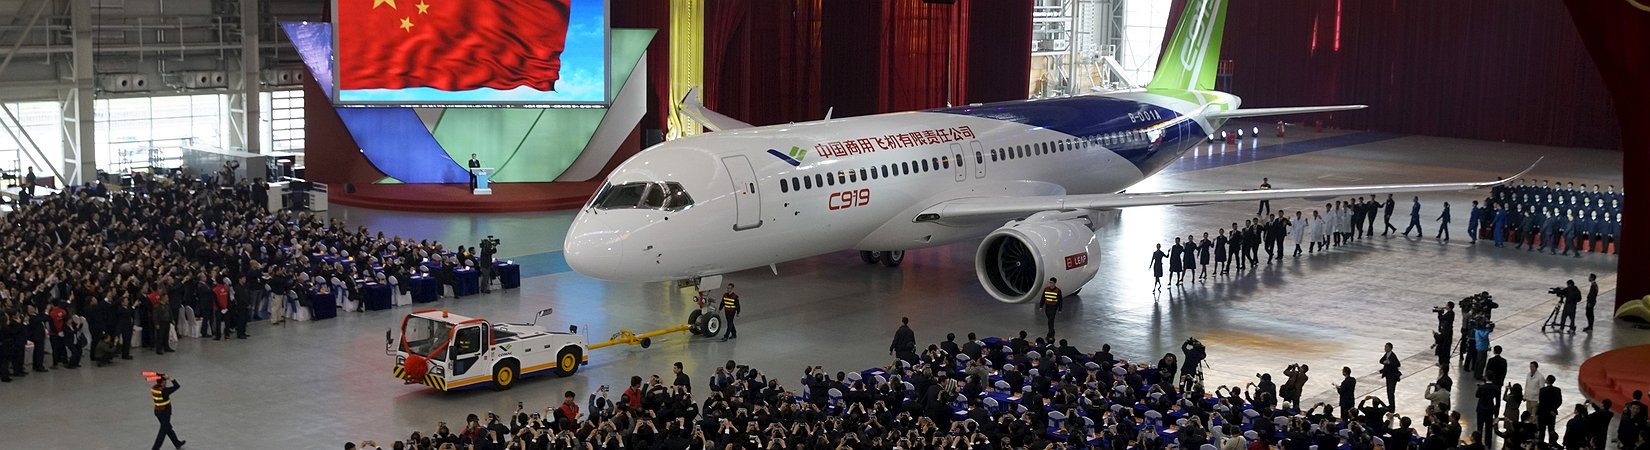 China on the verge of becoming an aviation superpower